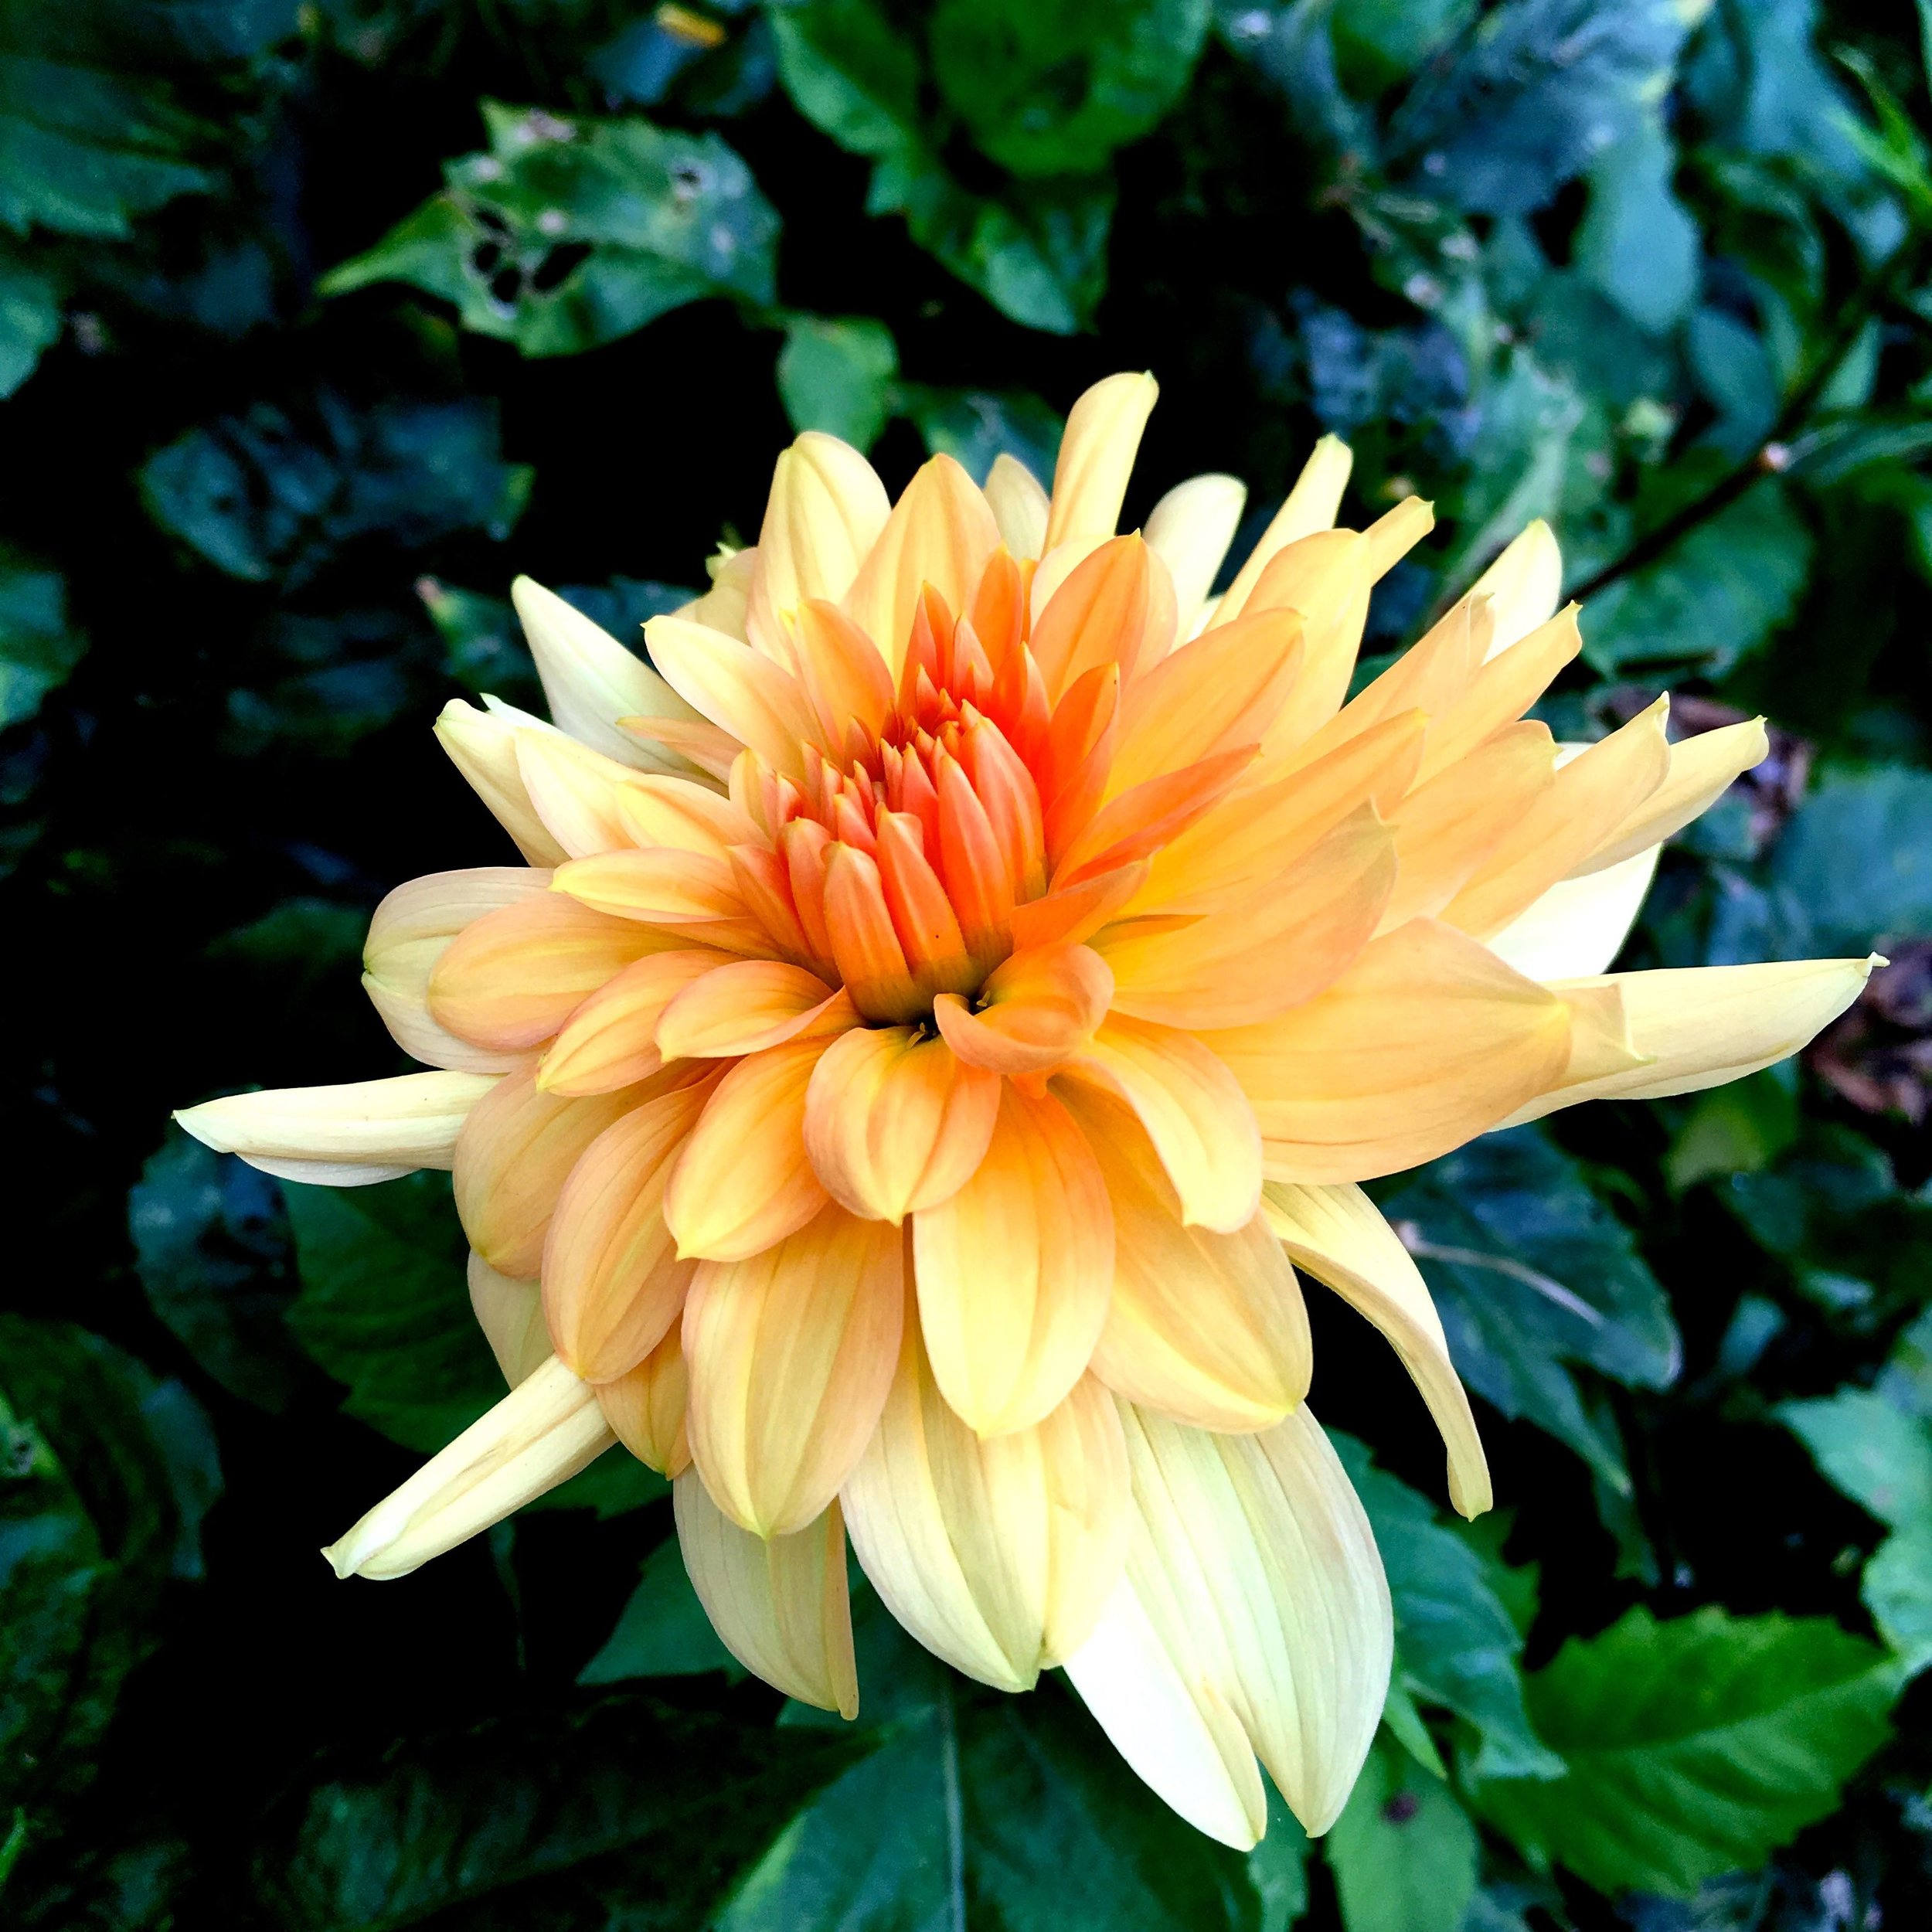 A peach coloured dahlia in dad's autumn garden